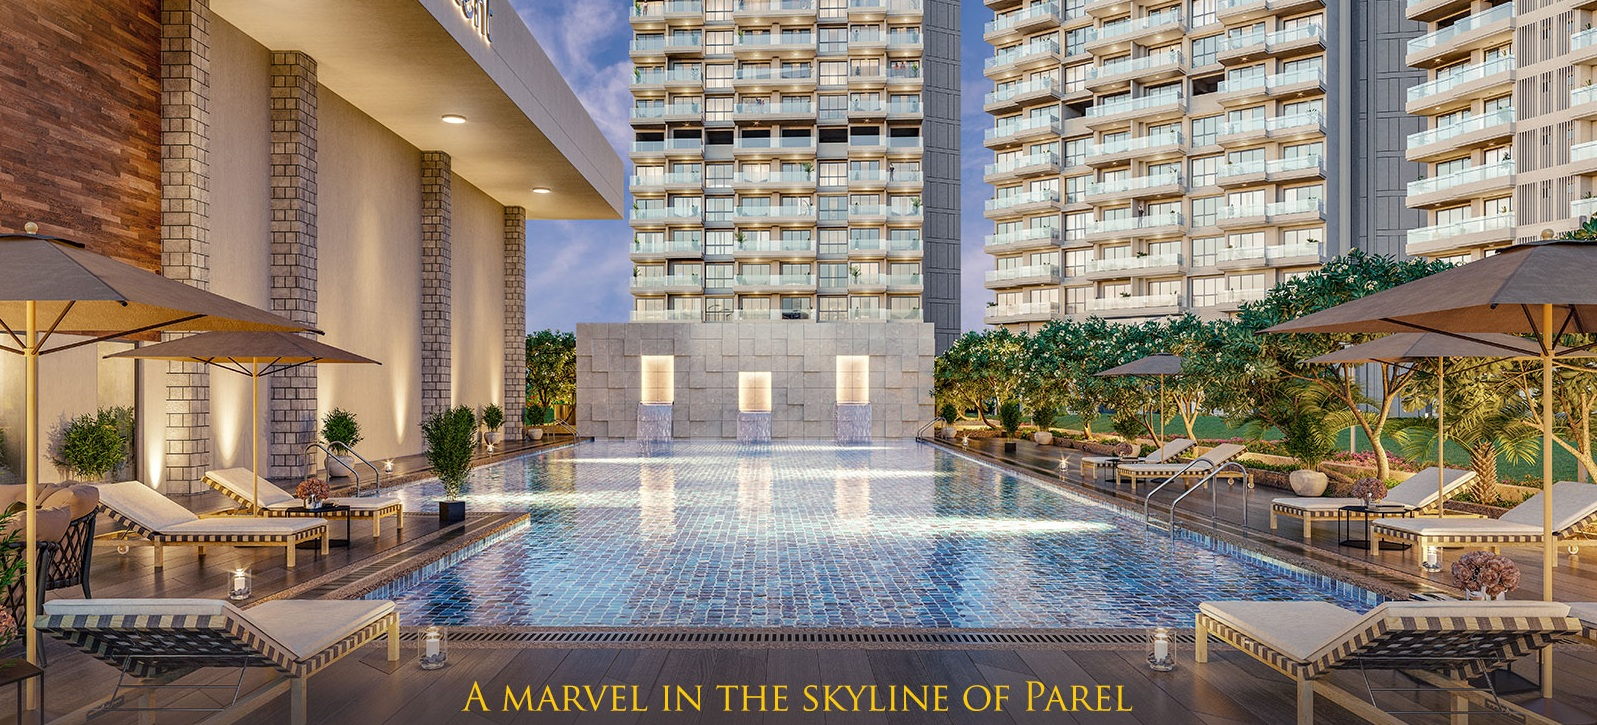 lnt realty crescent bay project amenities features1